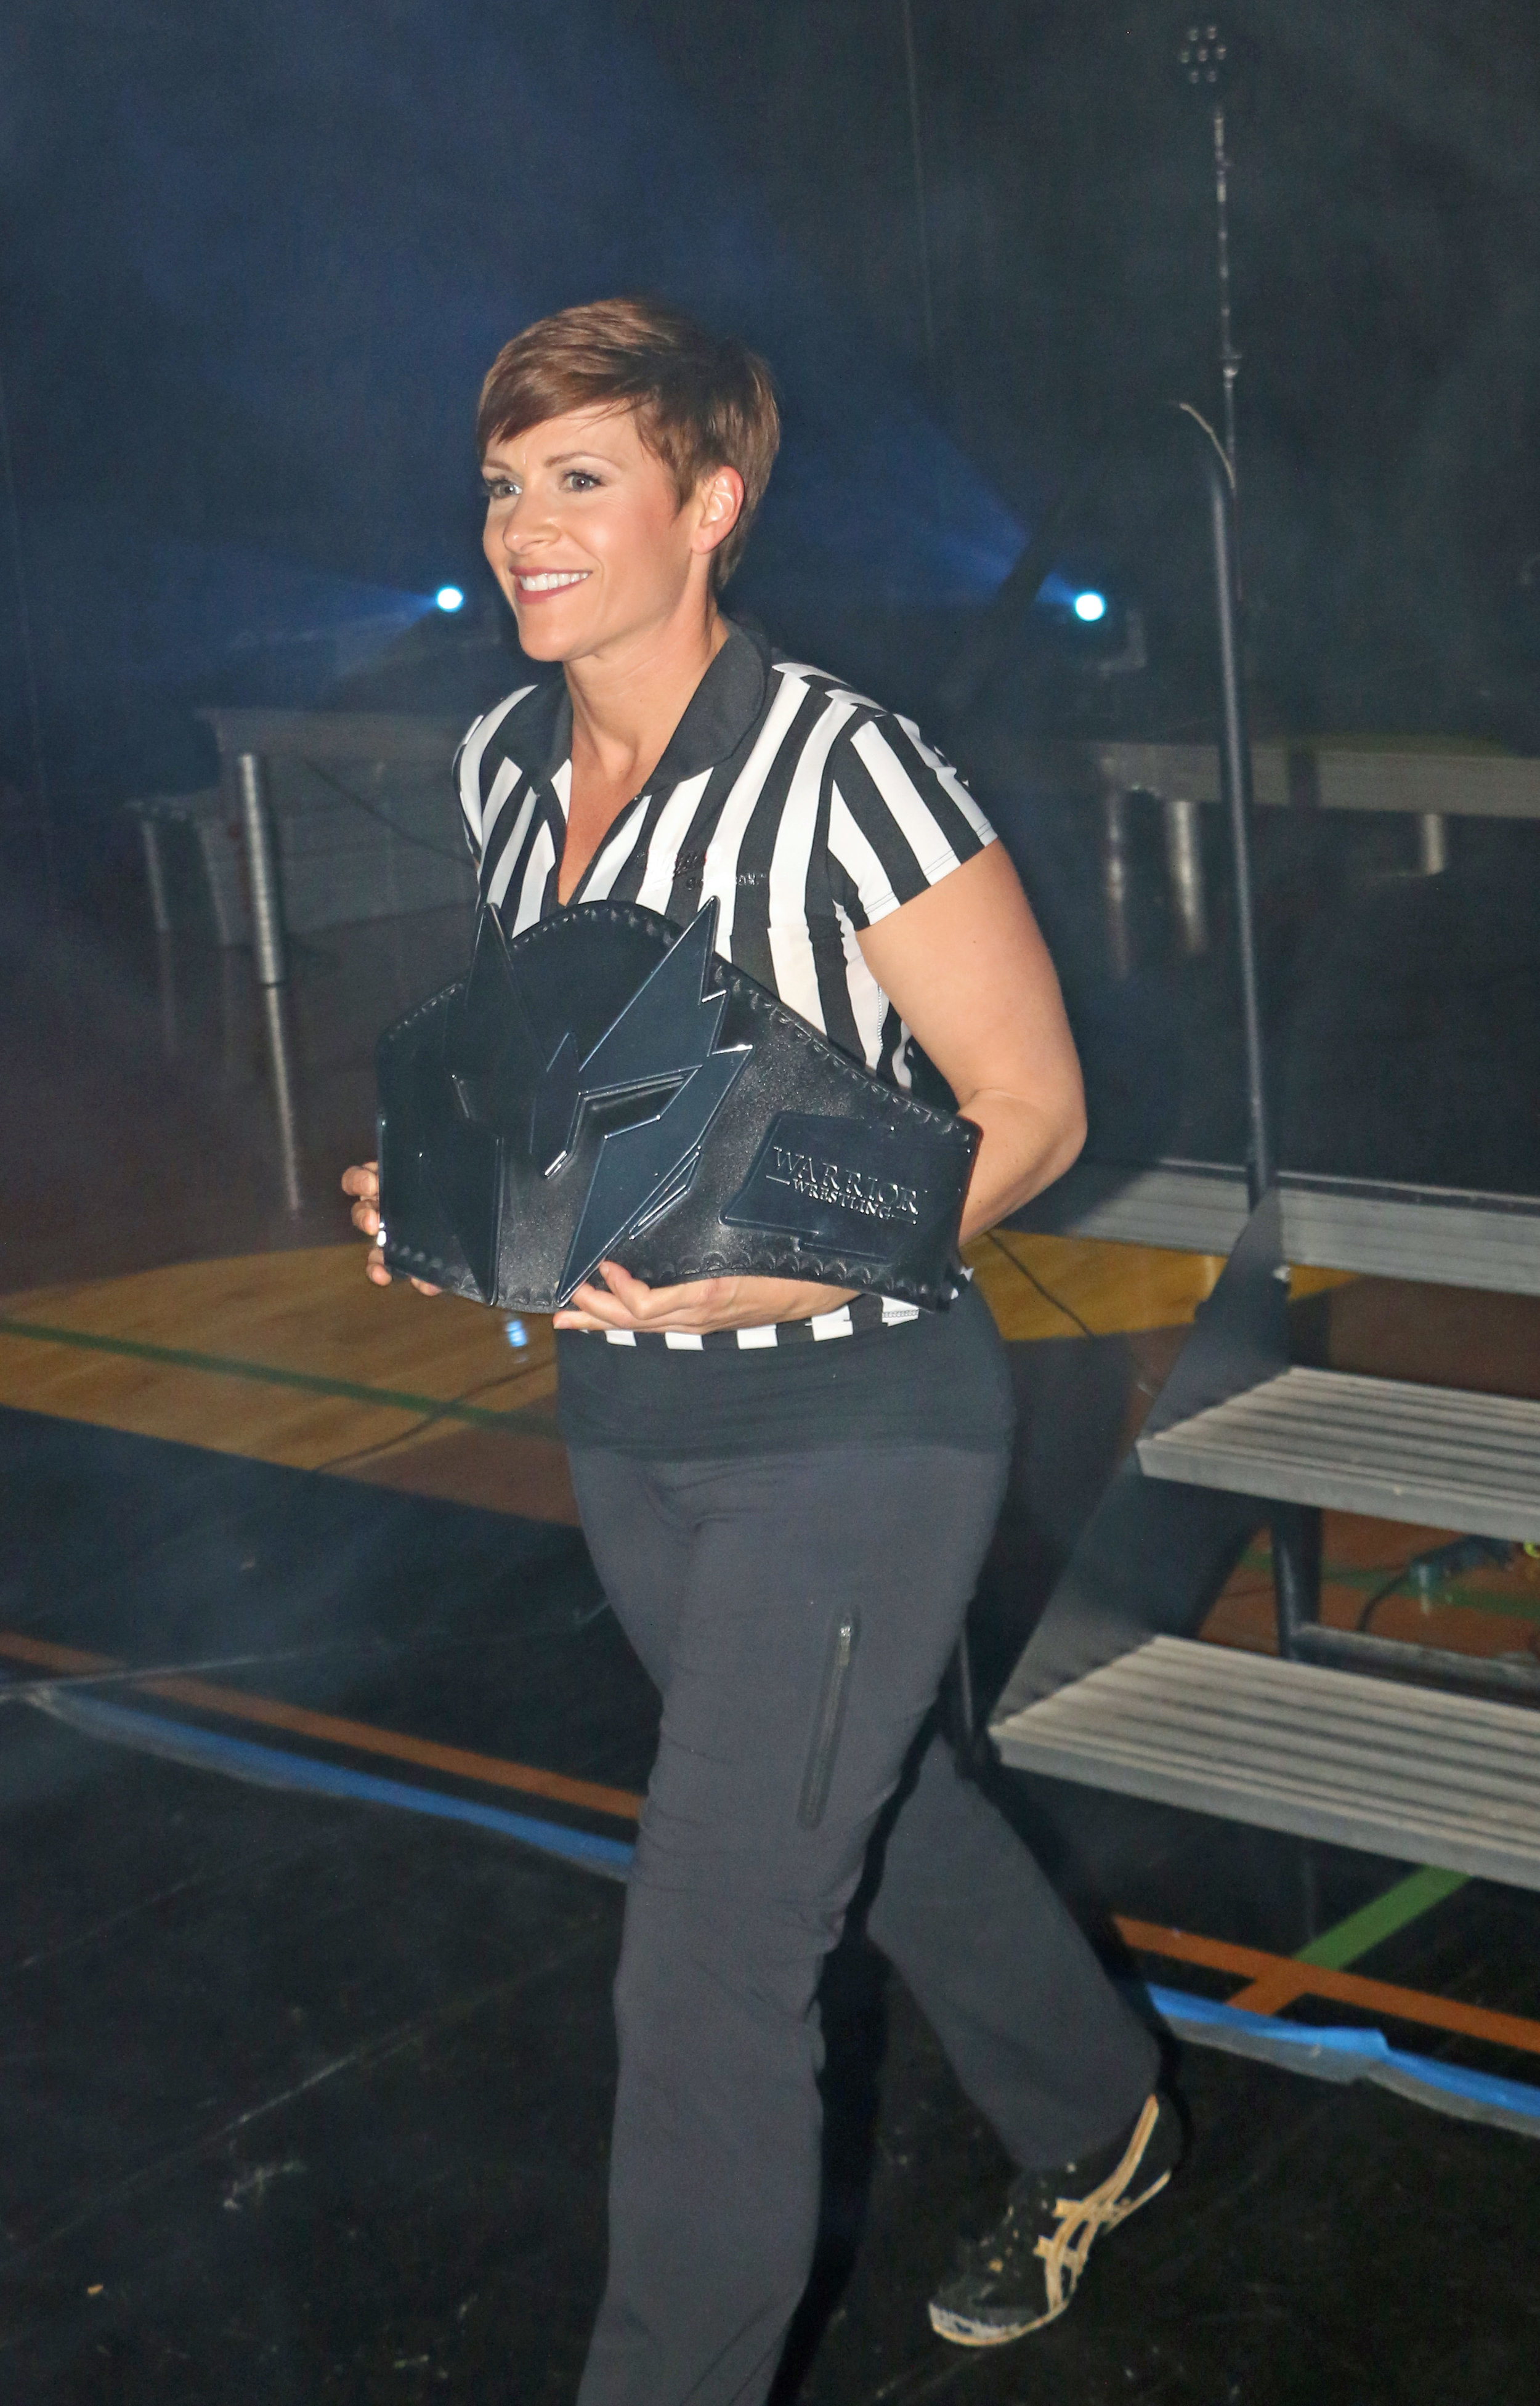 Special guest referee Molly Holly walks out with the brand-new Warrior Wrestling Women's Championship.